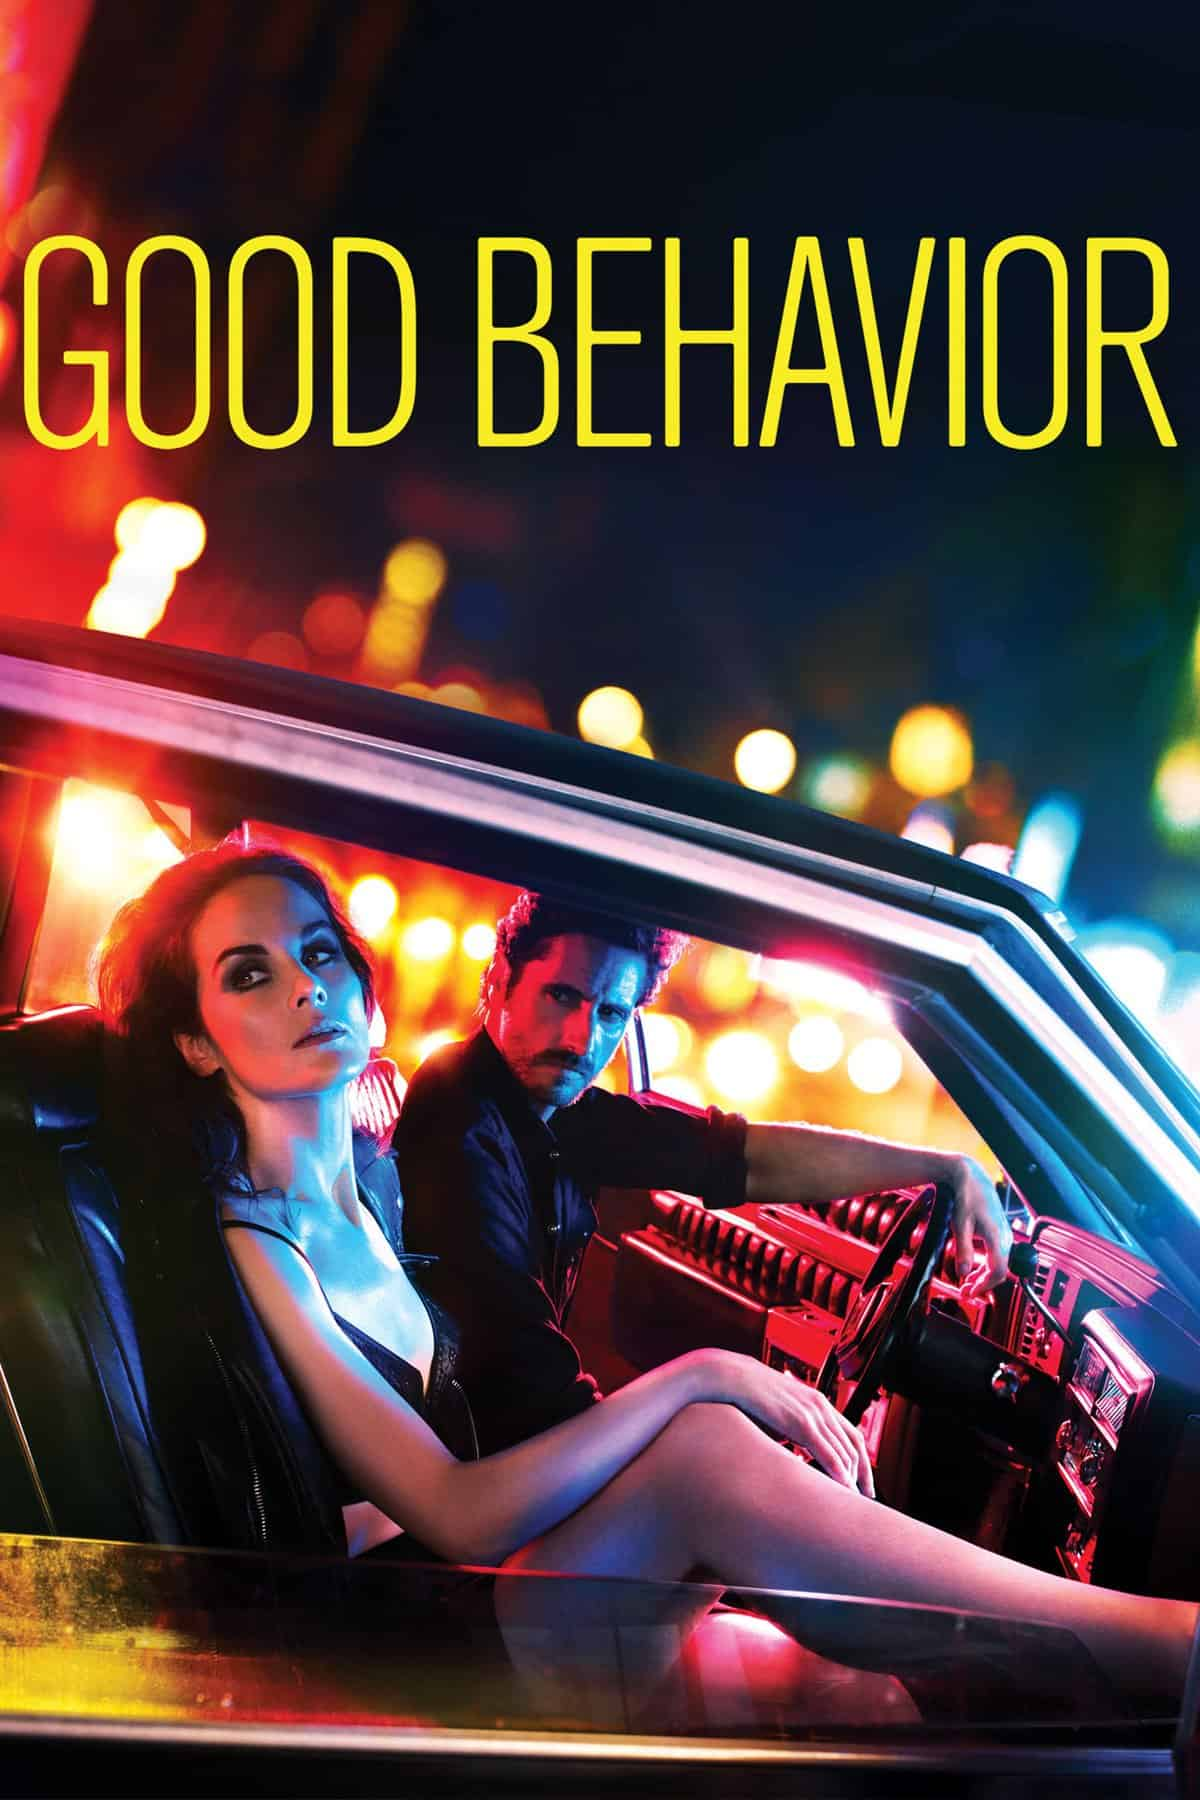 Good Behavior, 2008